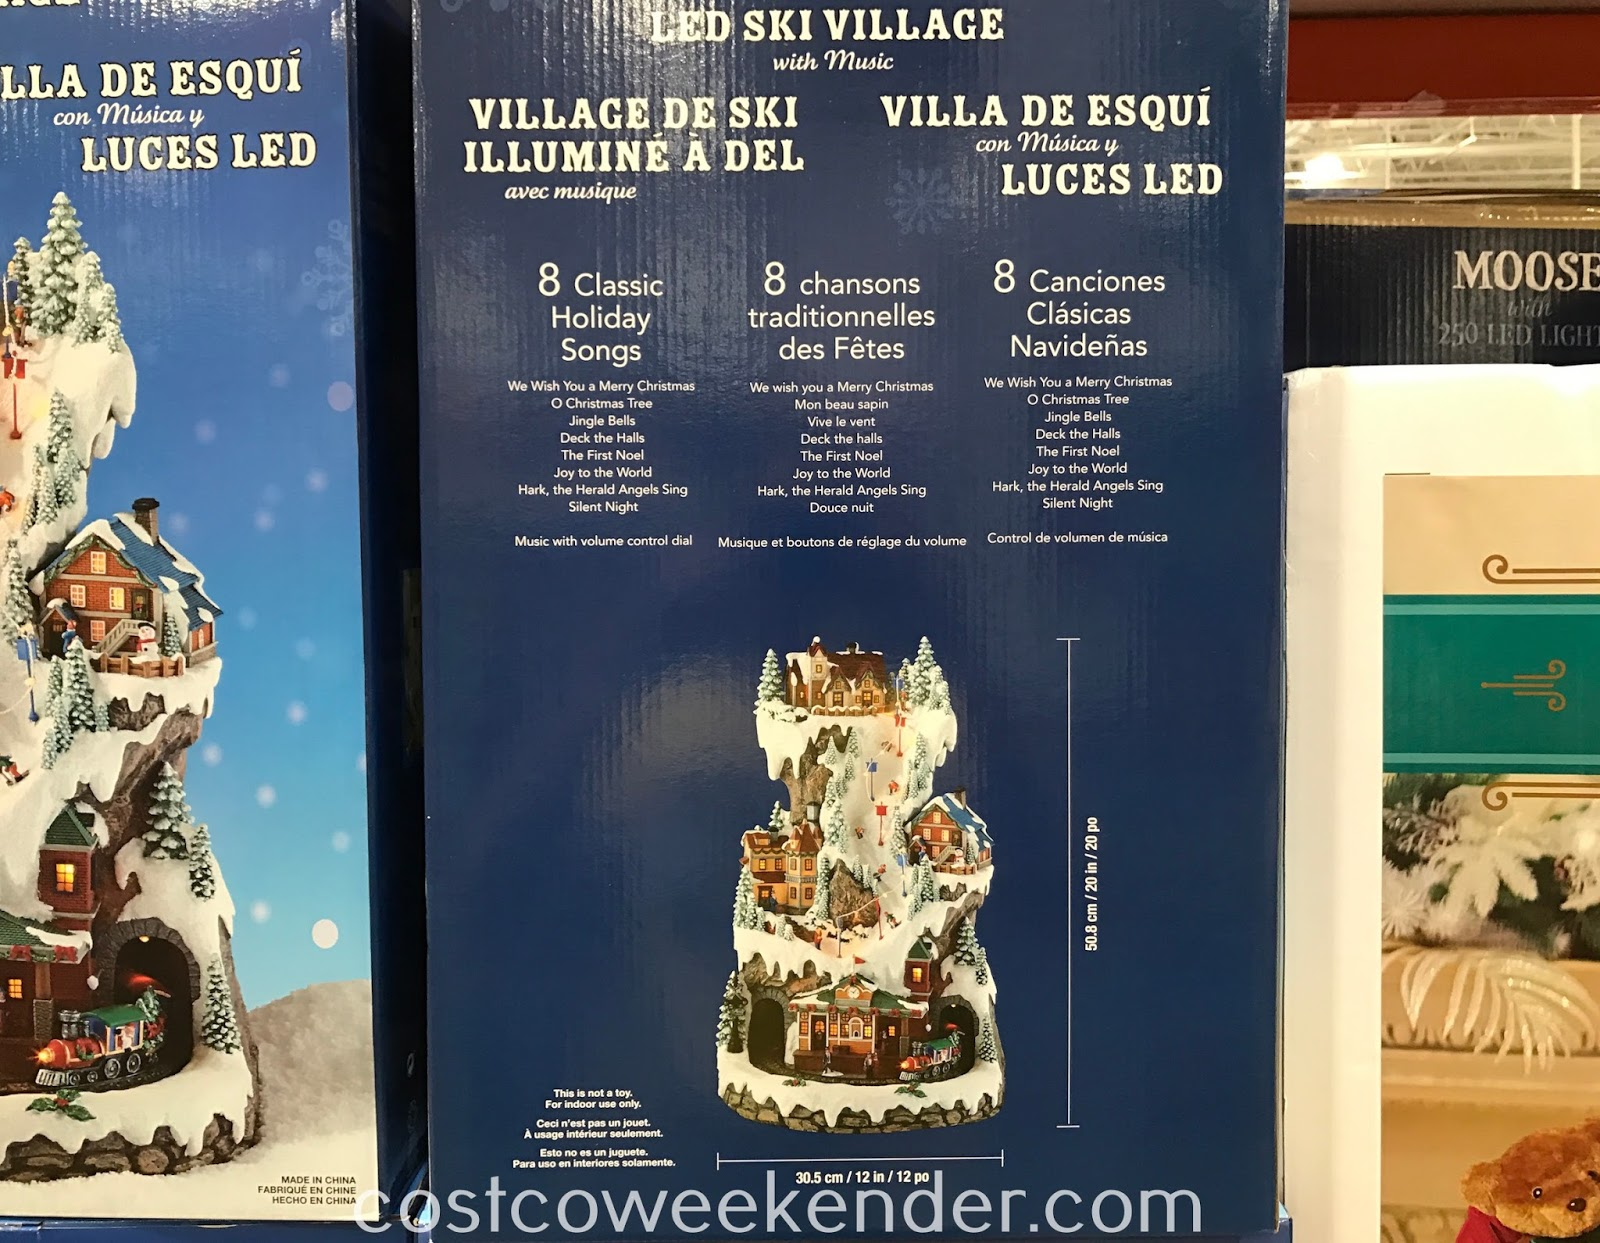 Costco 1456720 - LED Winter Ski Village with Music: great for the holidays